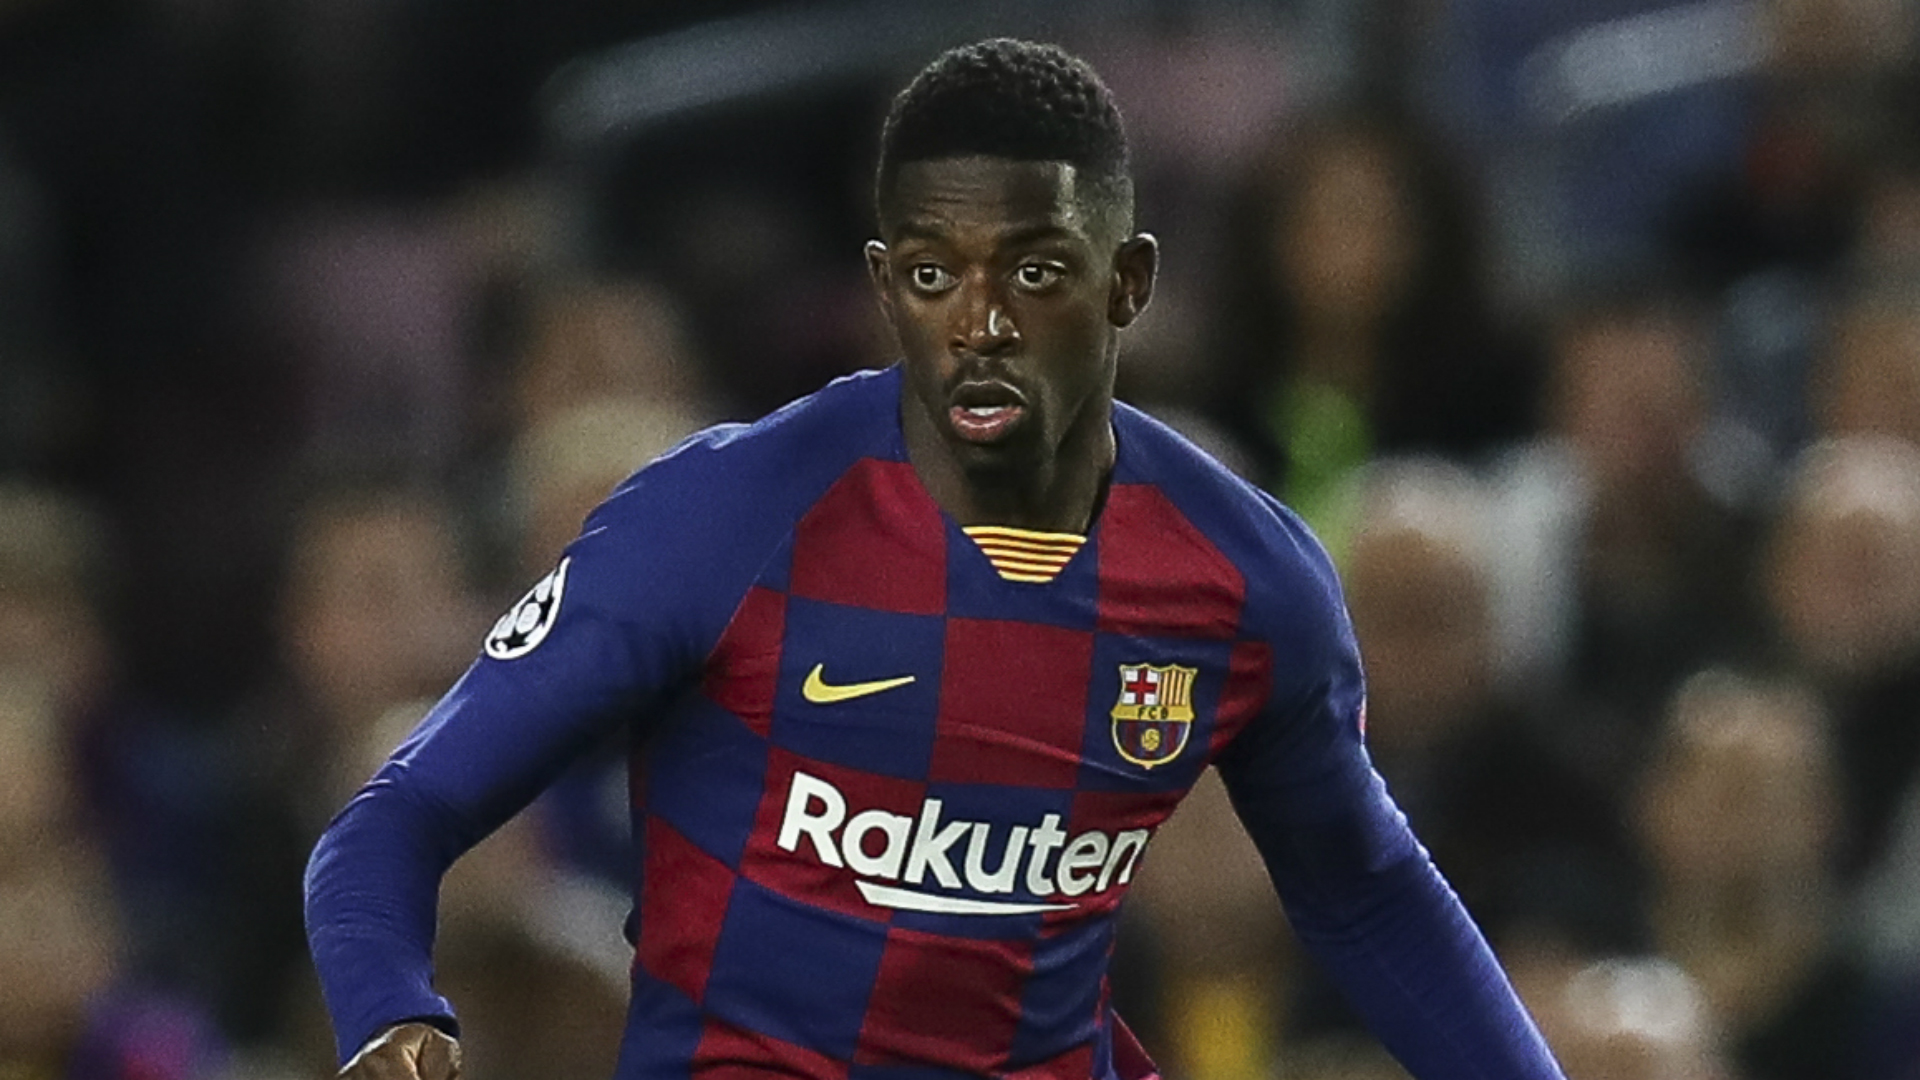 Barcelona forward Dembele tests negative for coronavirus and aims to make Champions League return